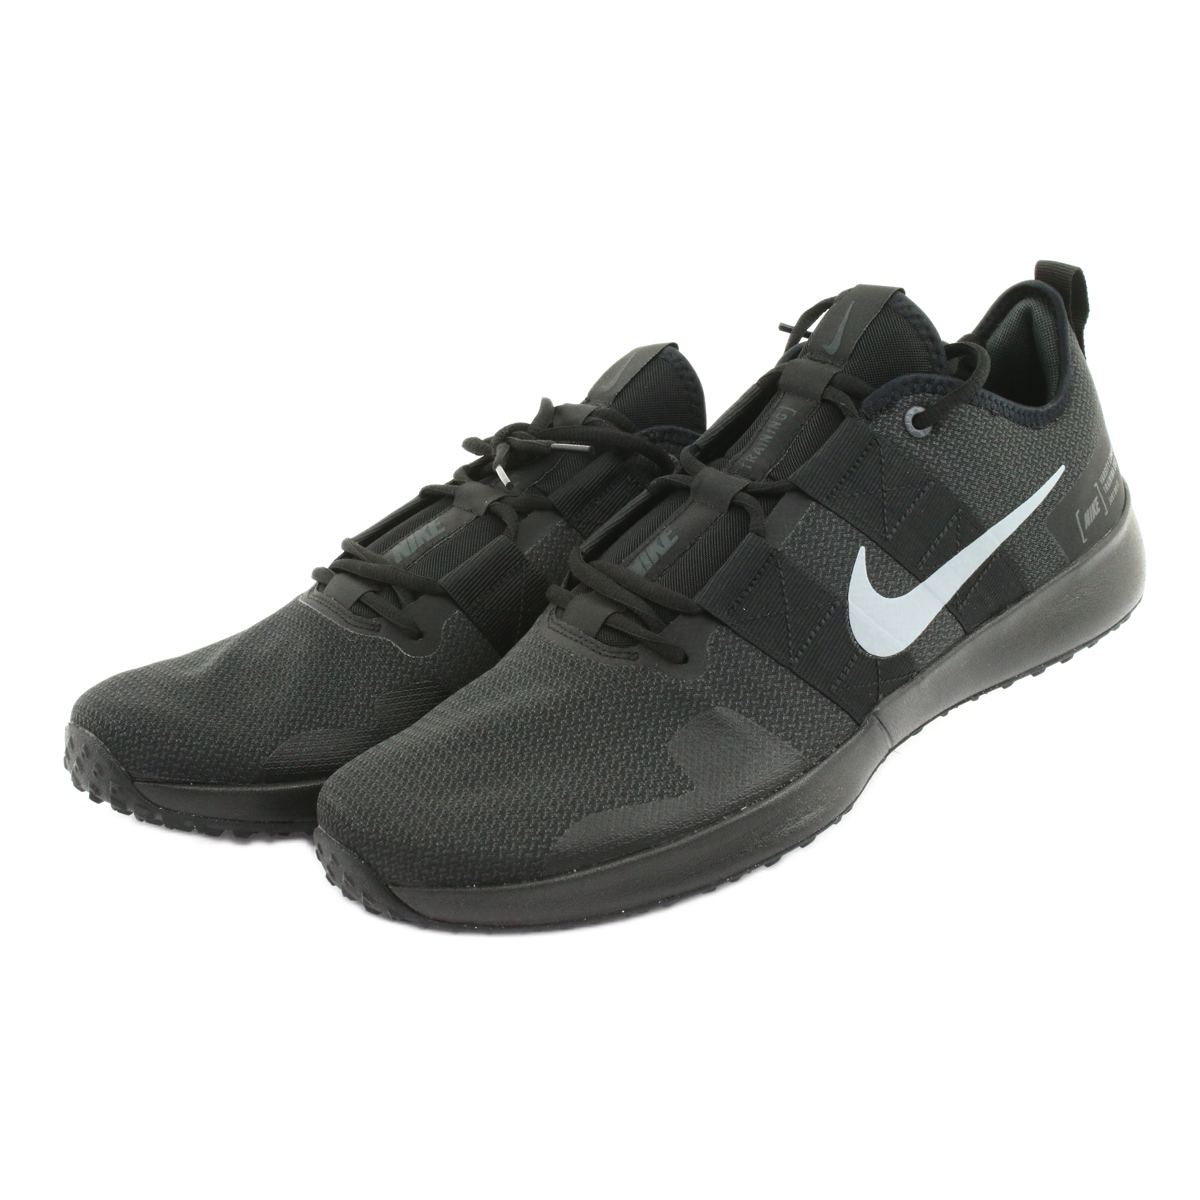 Details about Nike VARSITY COMPETE TRAINER Mens BlackGym Red AA7064 006 Athletic Shoes